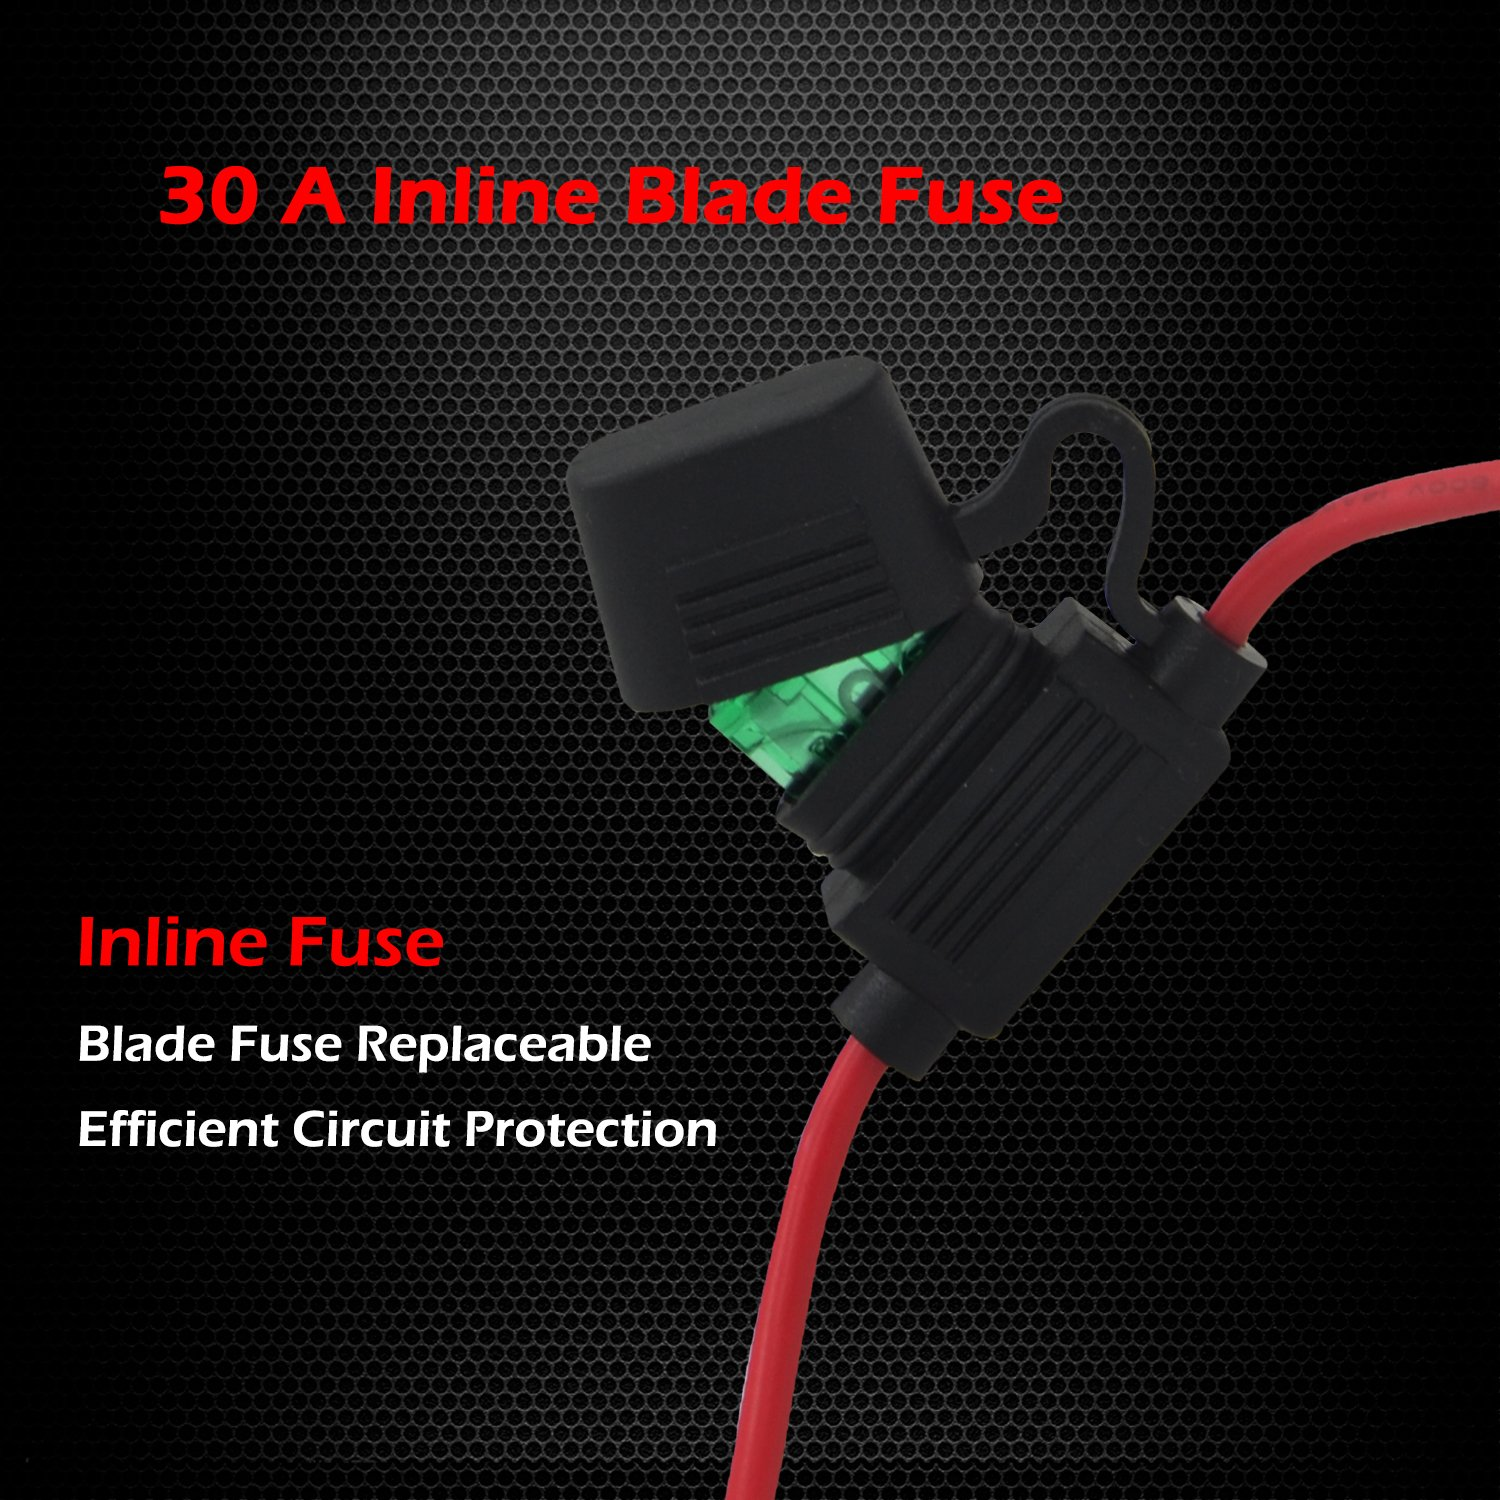 Heavy Duty Wiring Harness Ampper 14 Awg Waterproof Diy Electrical Circuit Choose The Correct Gauge Wire To Avoid Fire Offroad Led Light Bar Kits For High Watt With 40 Amp Relay Fuse On Off